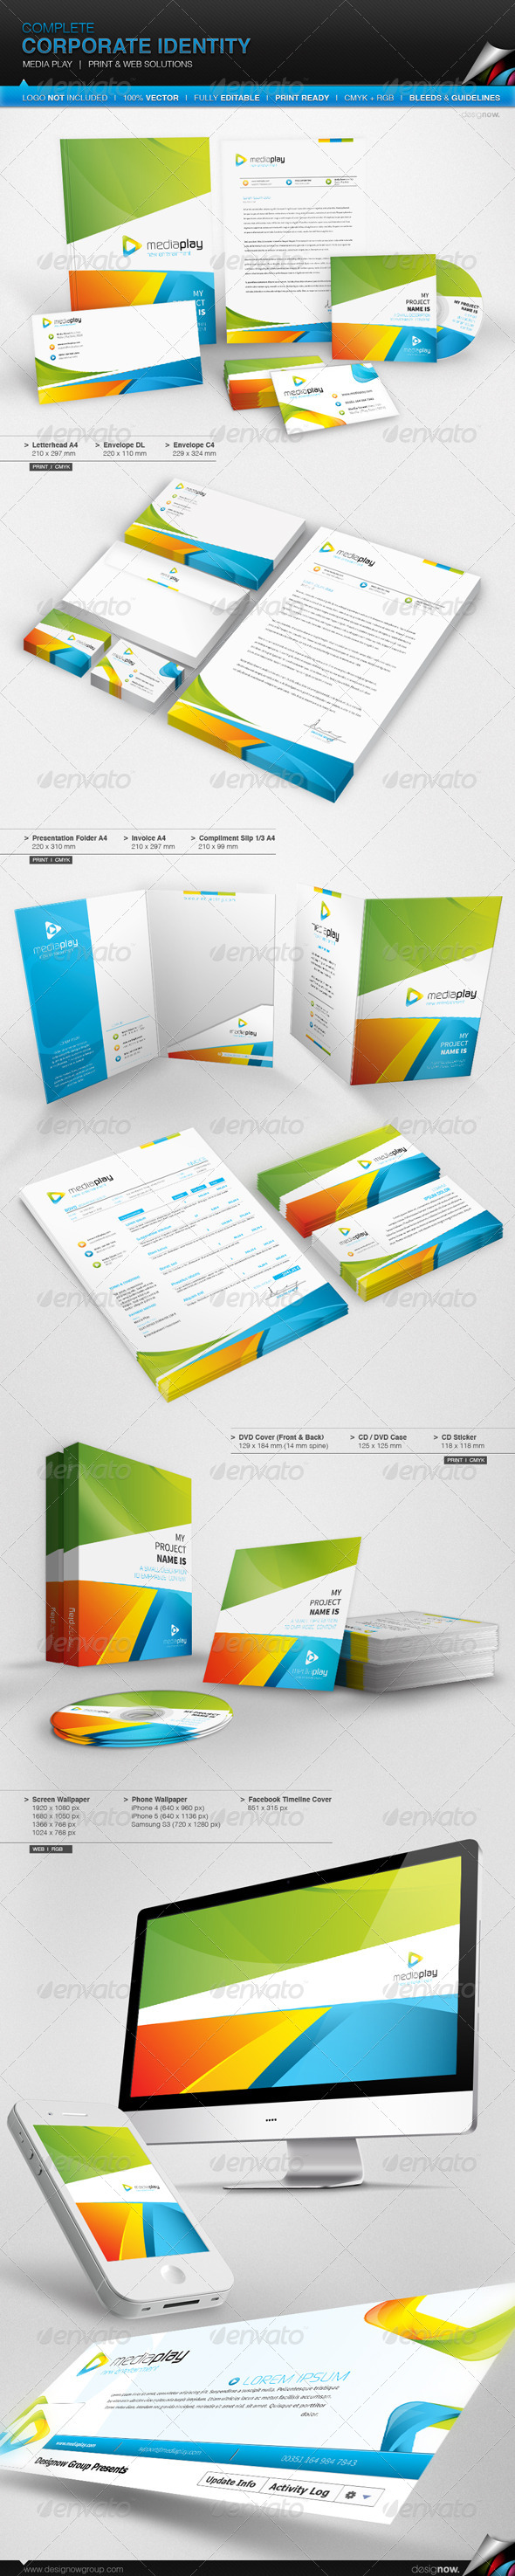 Corporate Identity - Media Play - Stationery Print Templates